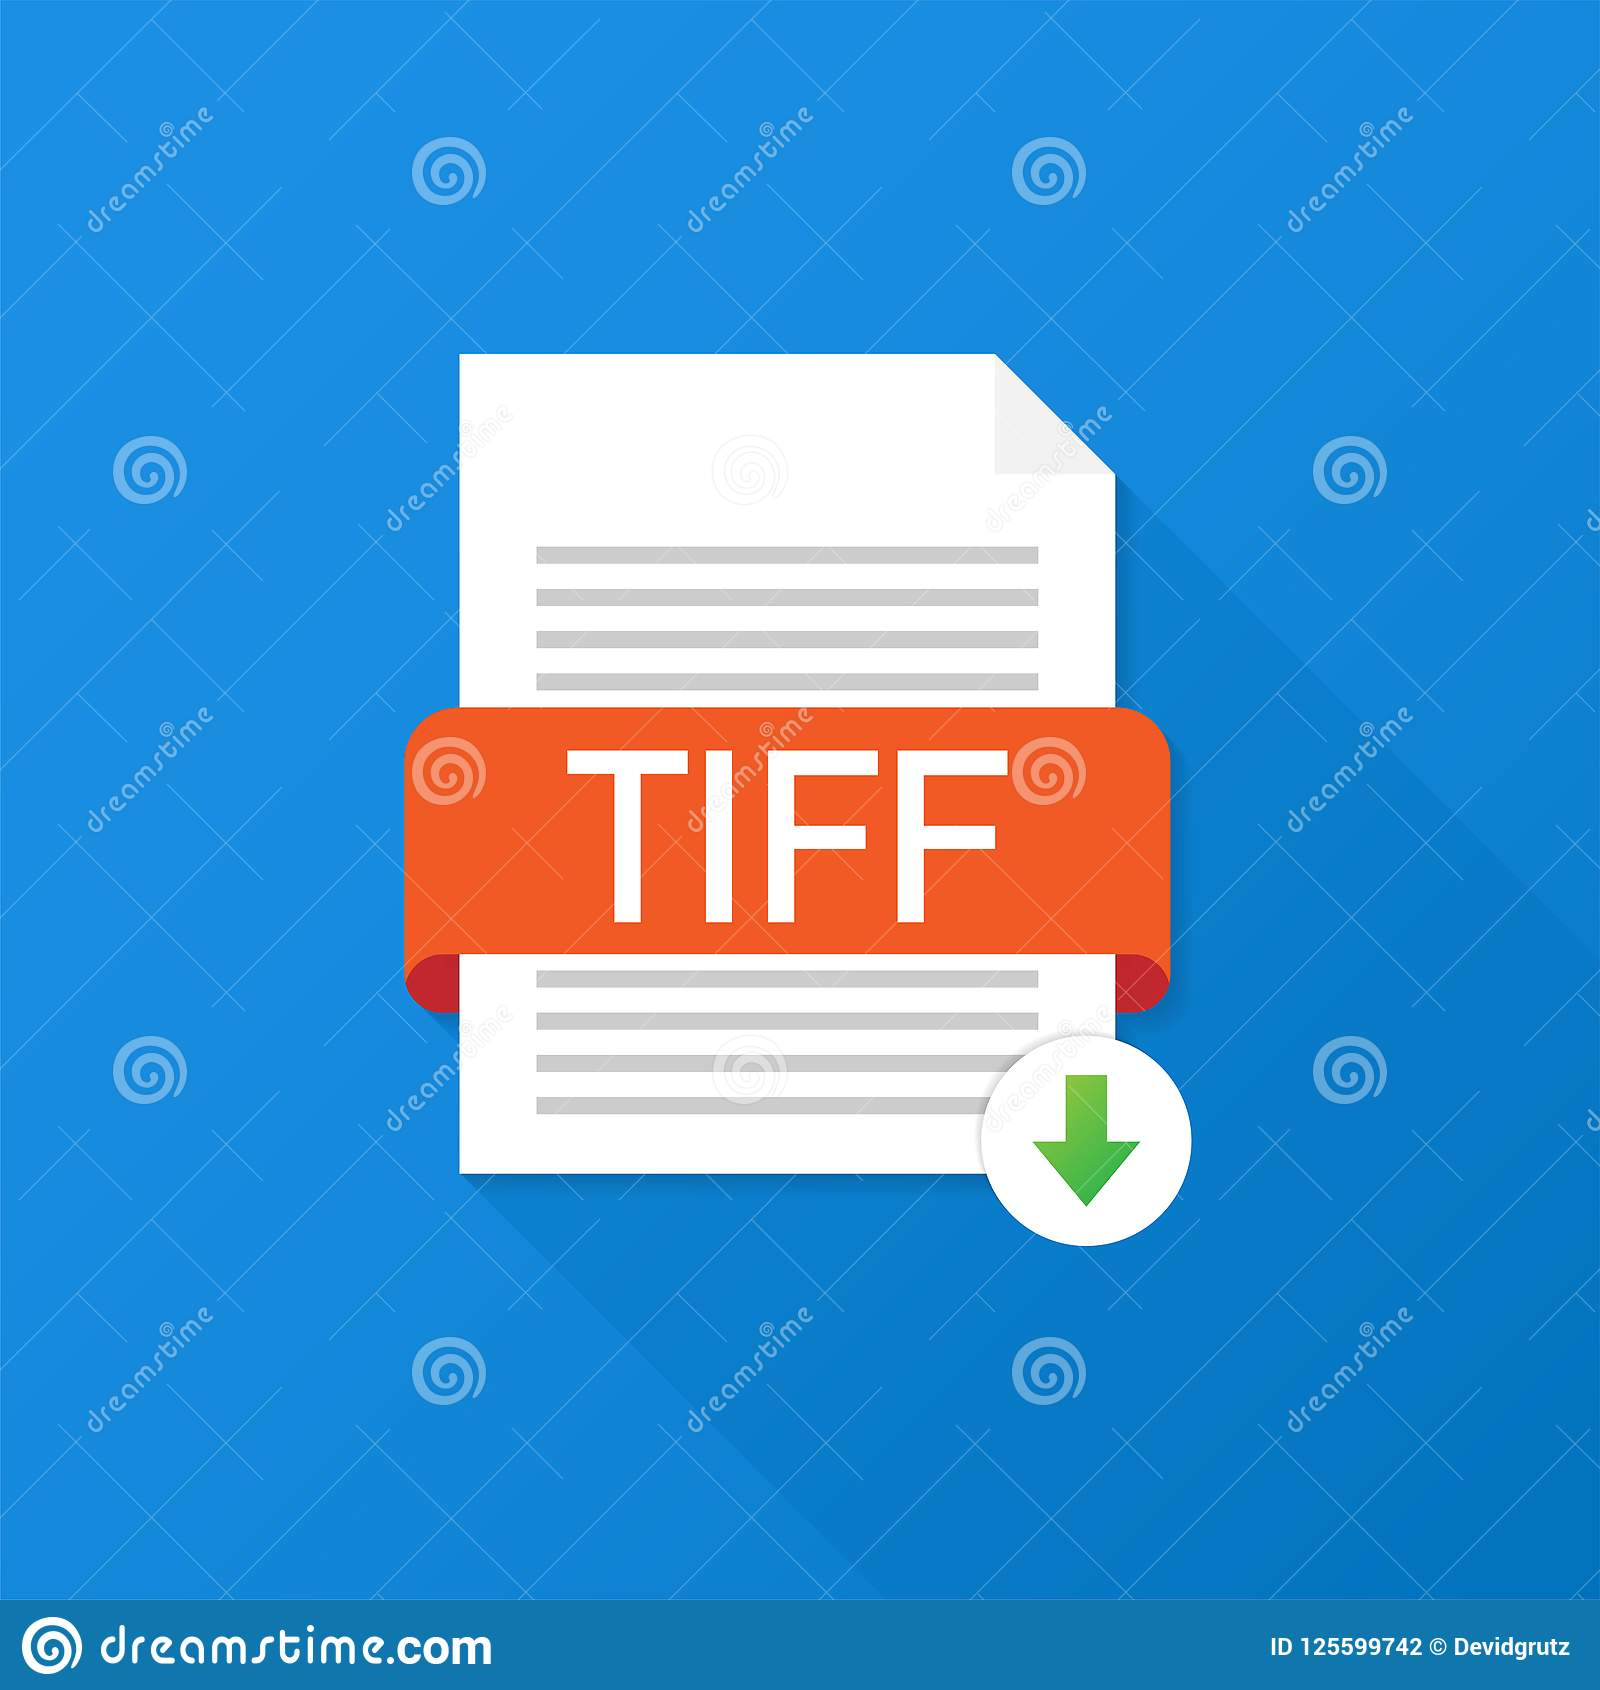 Download TIFF button. Downloading document concept. File with TIFF label and down arrow sign. Vector illustration.